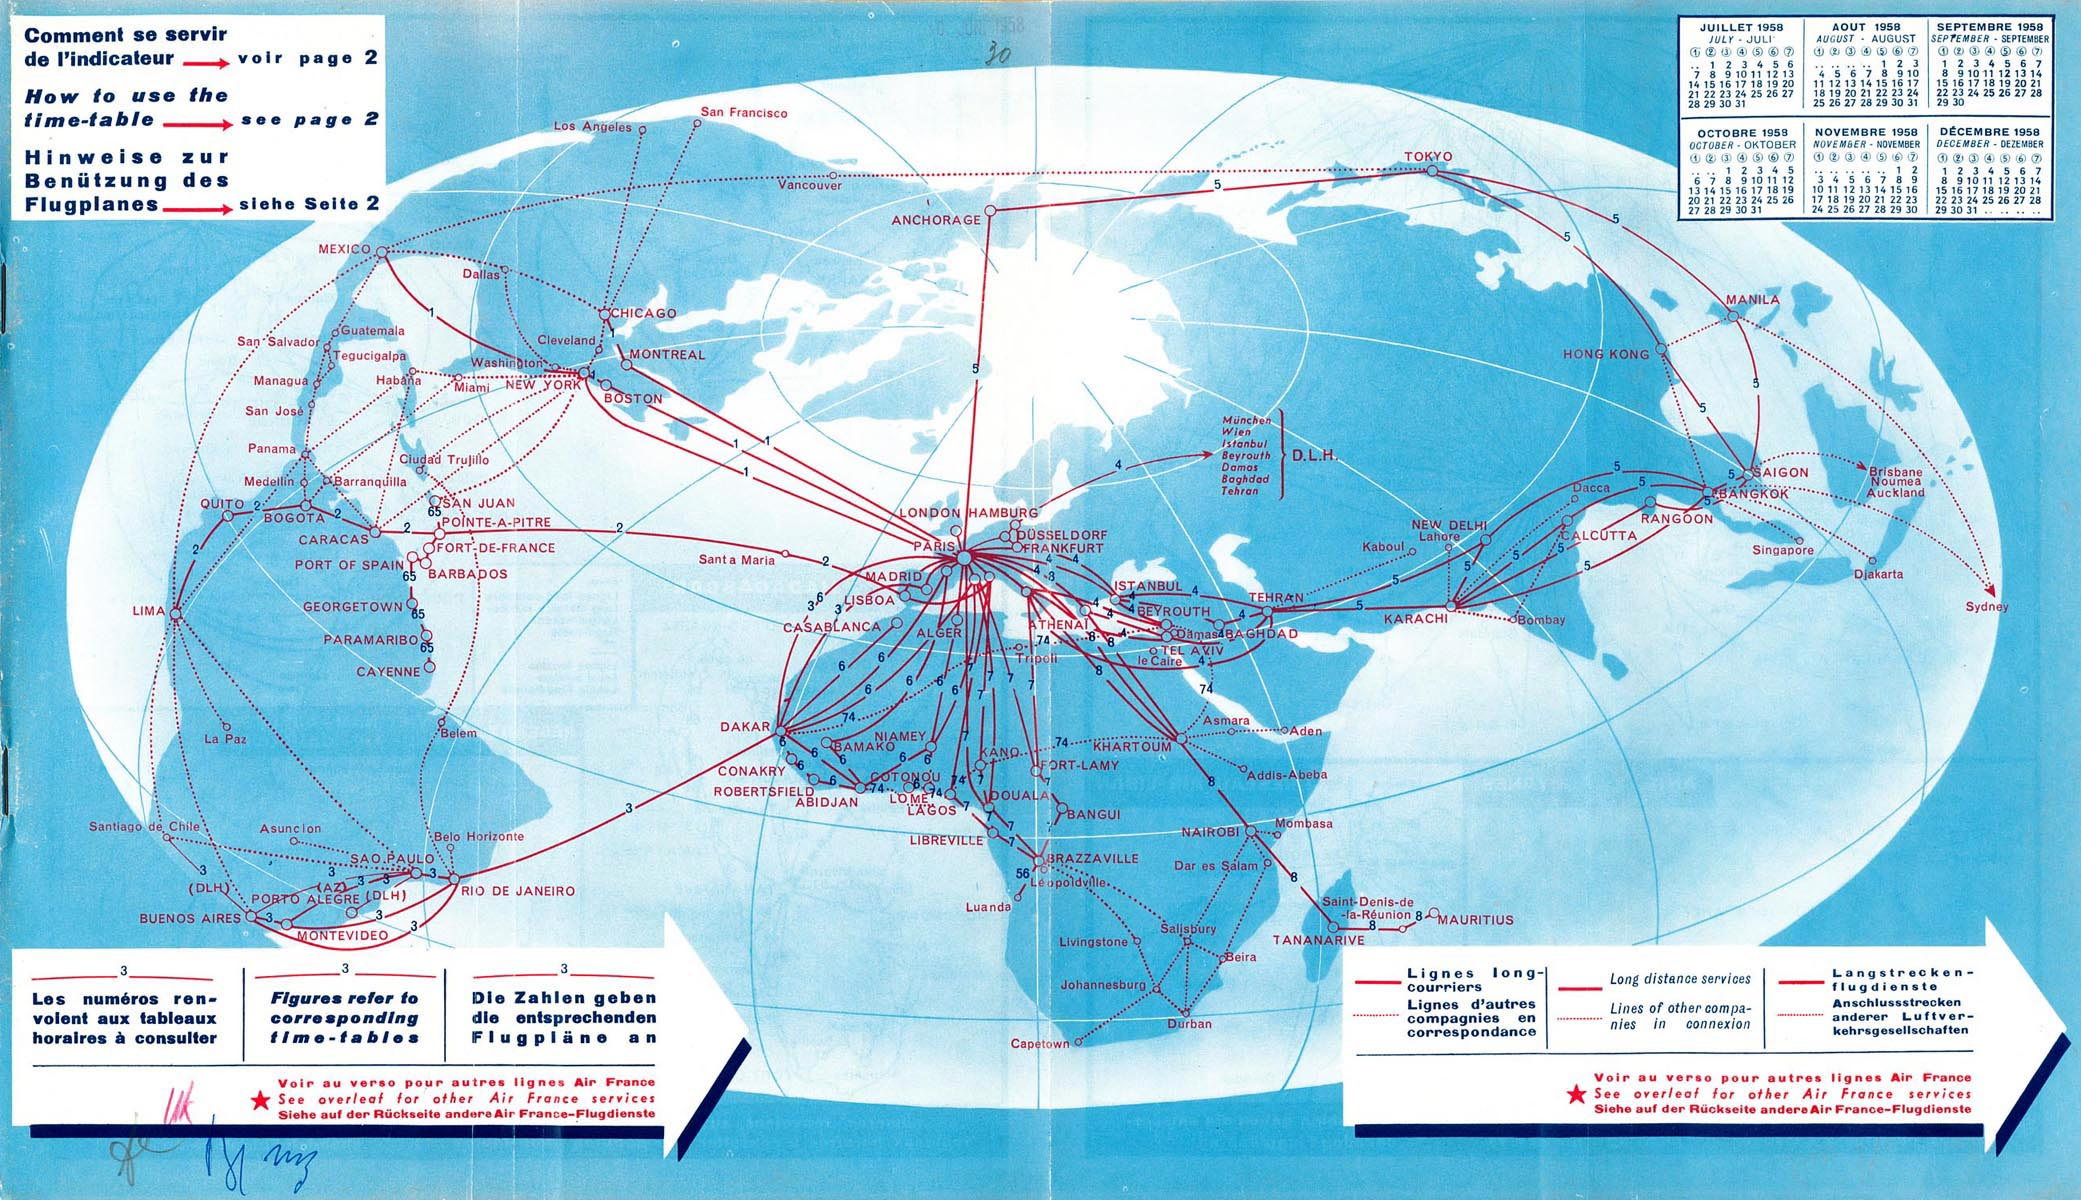 Air France Route Map Air France Route Map | compressportnederland Air France Route Map